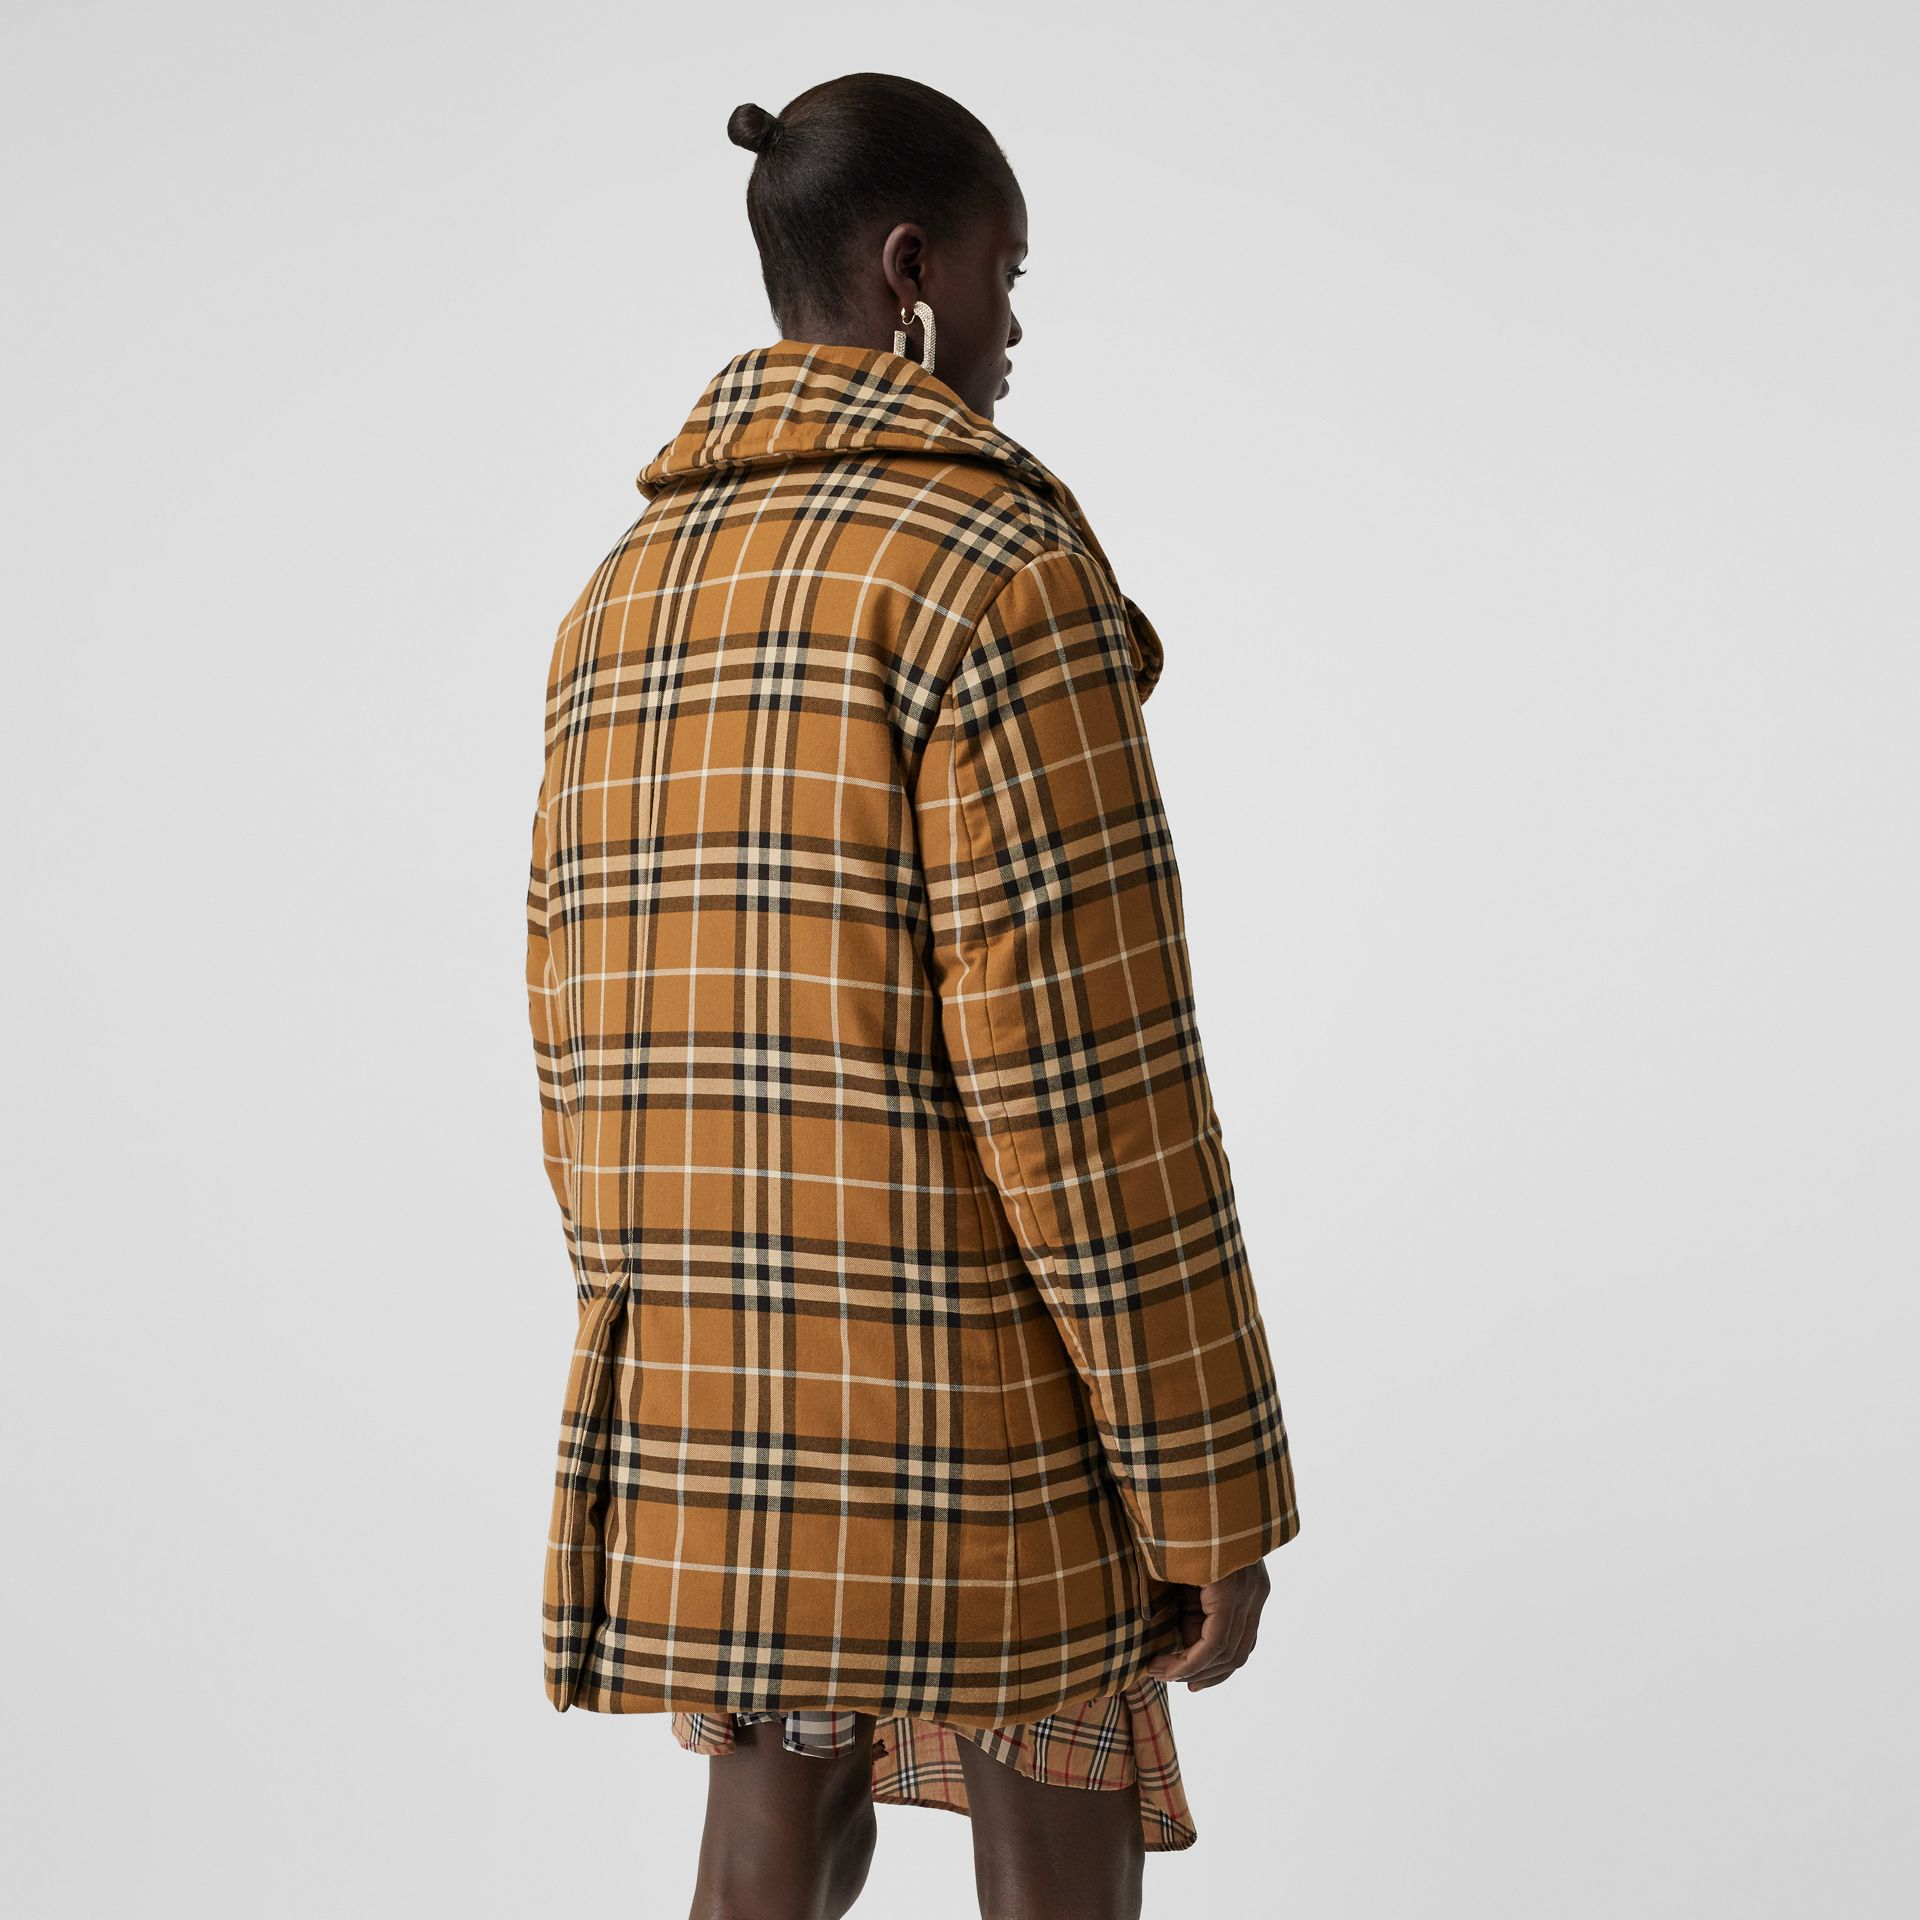 Caban oversize rembourré Horseferry et check (Noix Intense) - Femme | Burberry - photo de la galerie 2